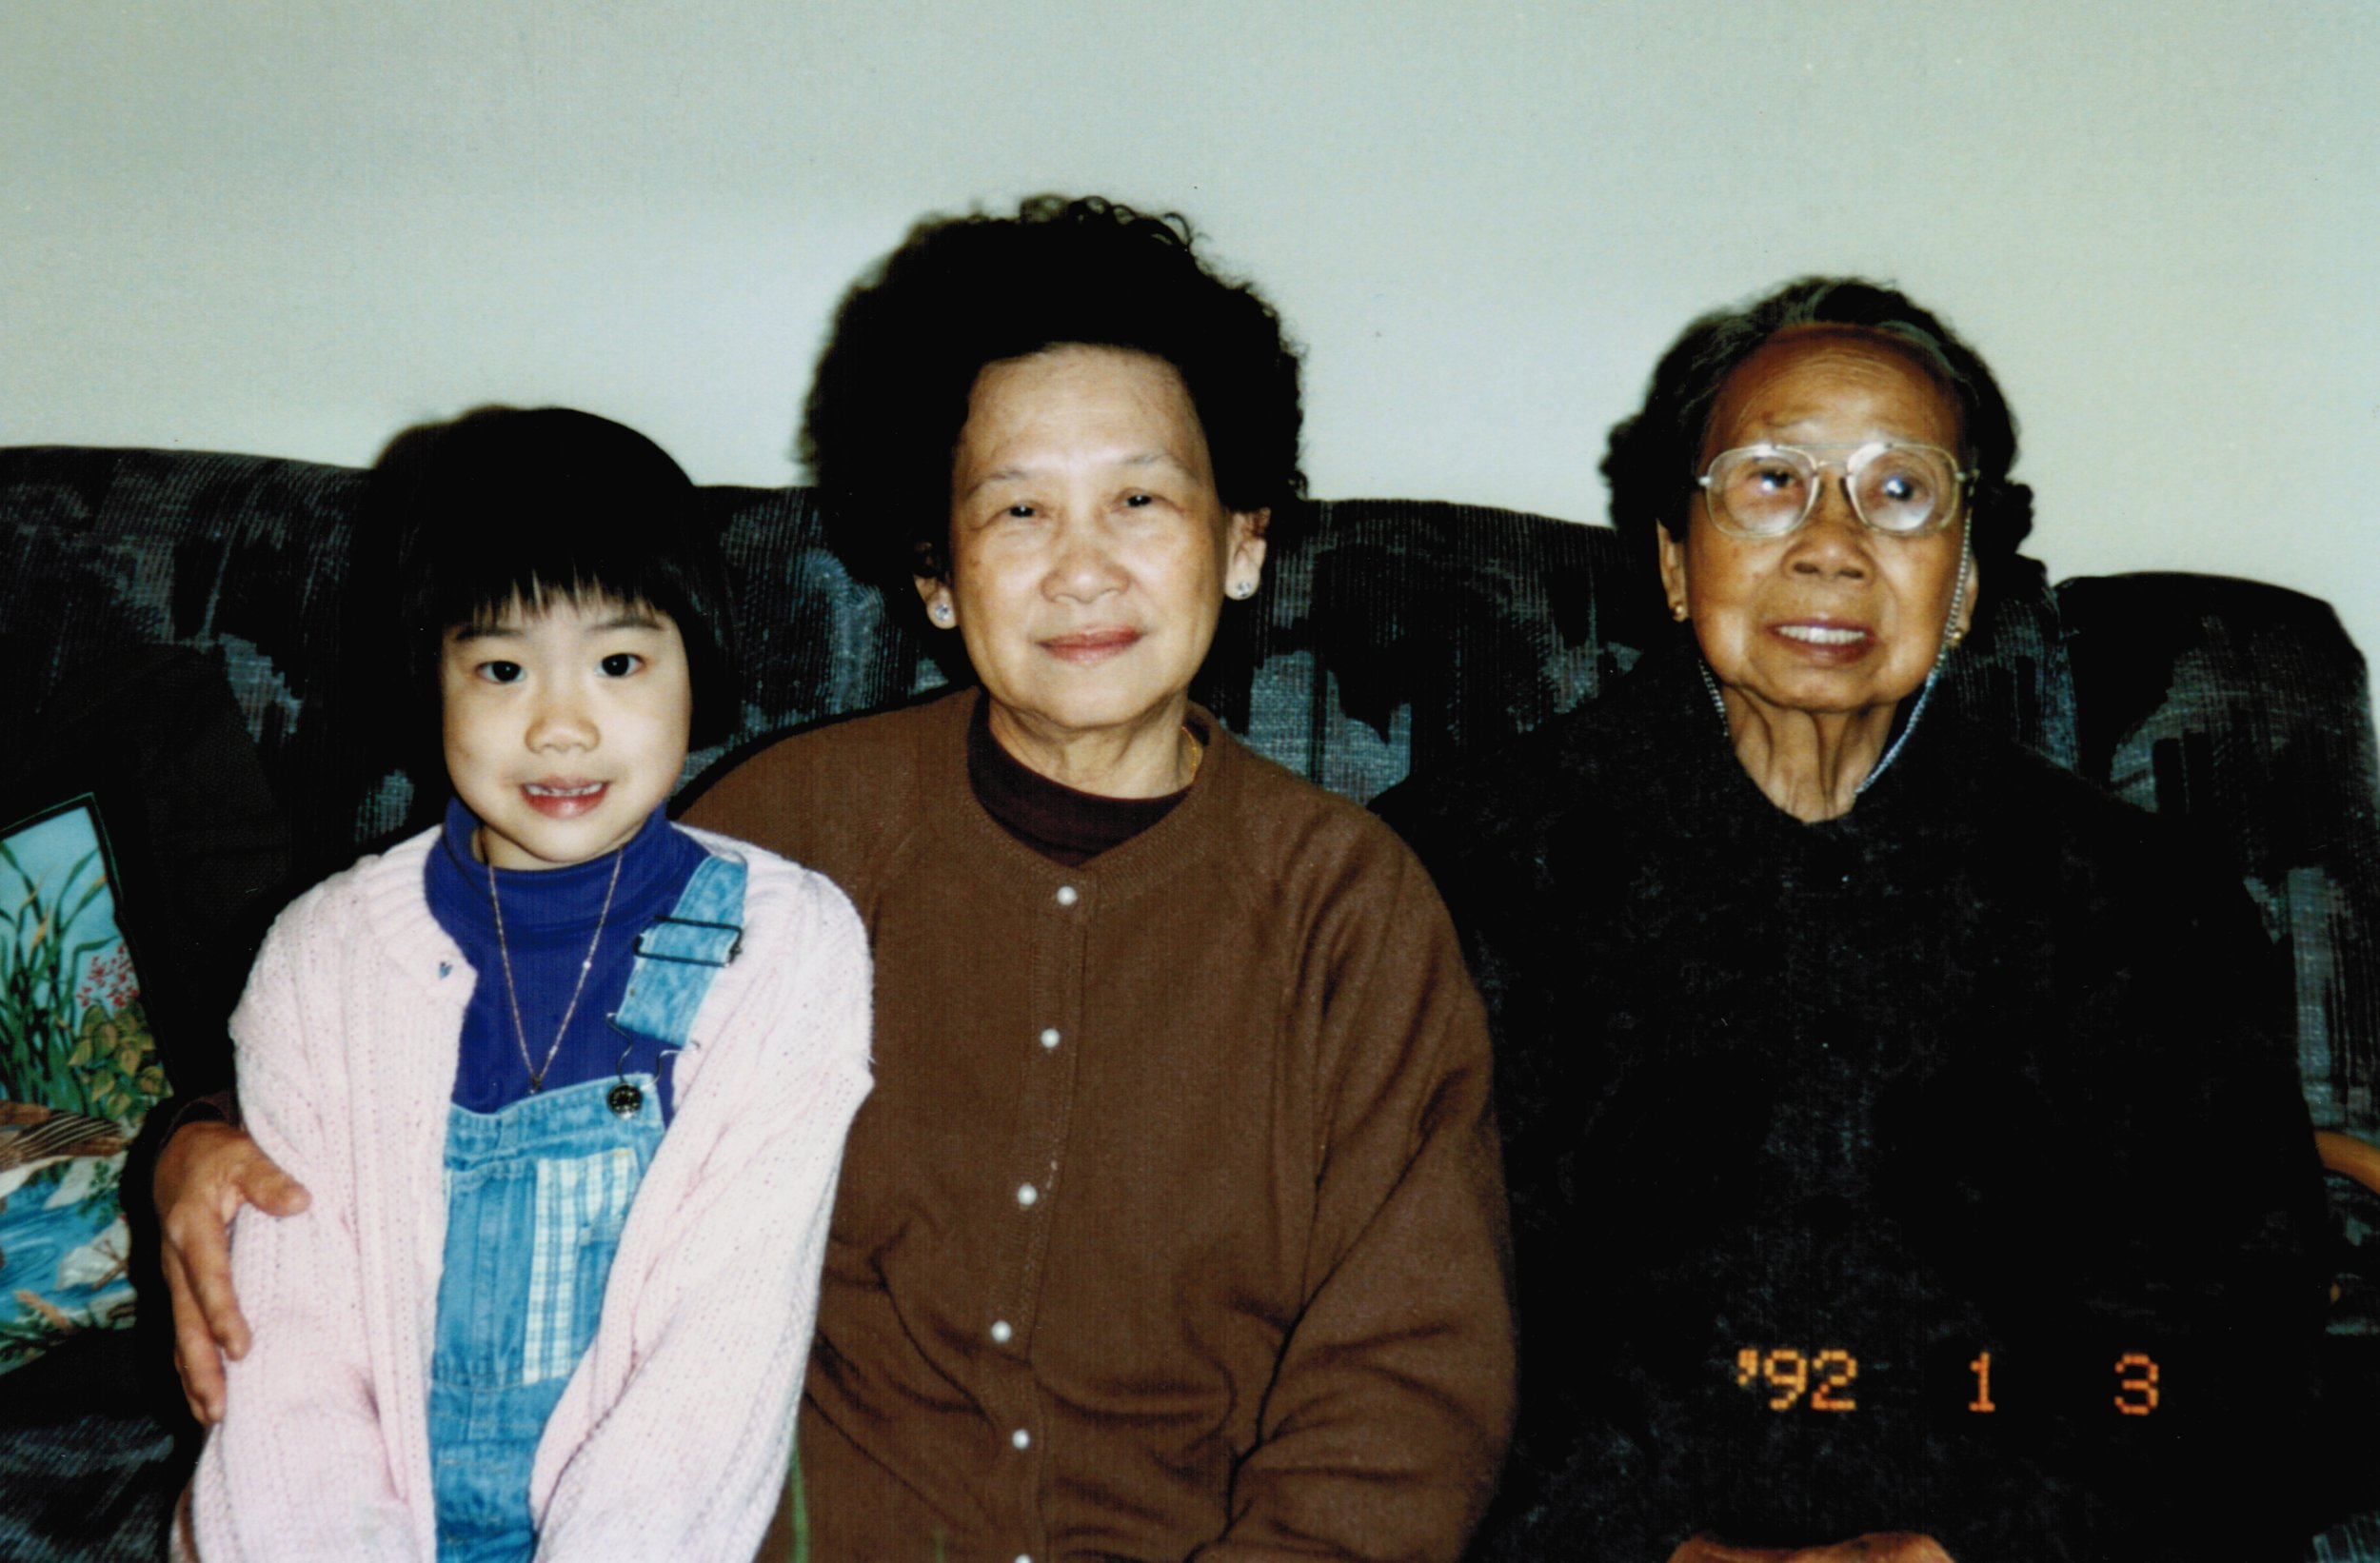 Casey with her maternal (left) and paternal (right) grandmothers